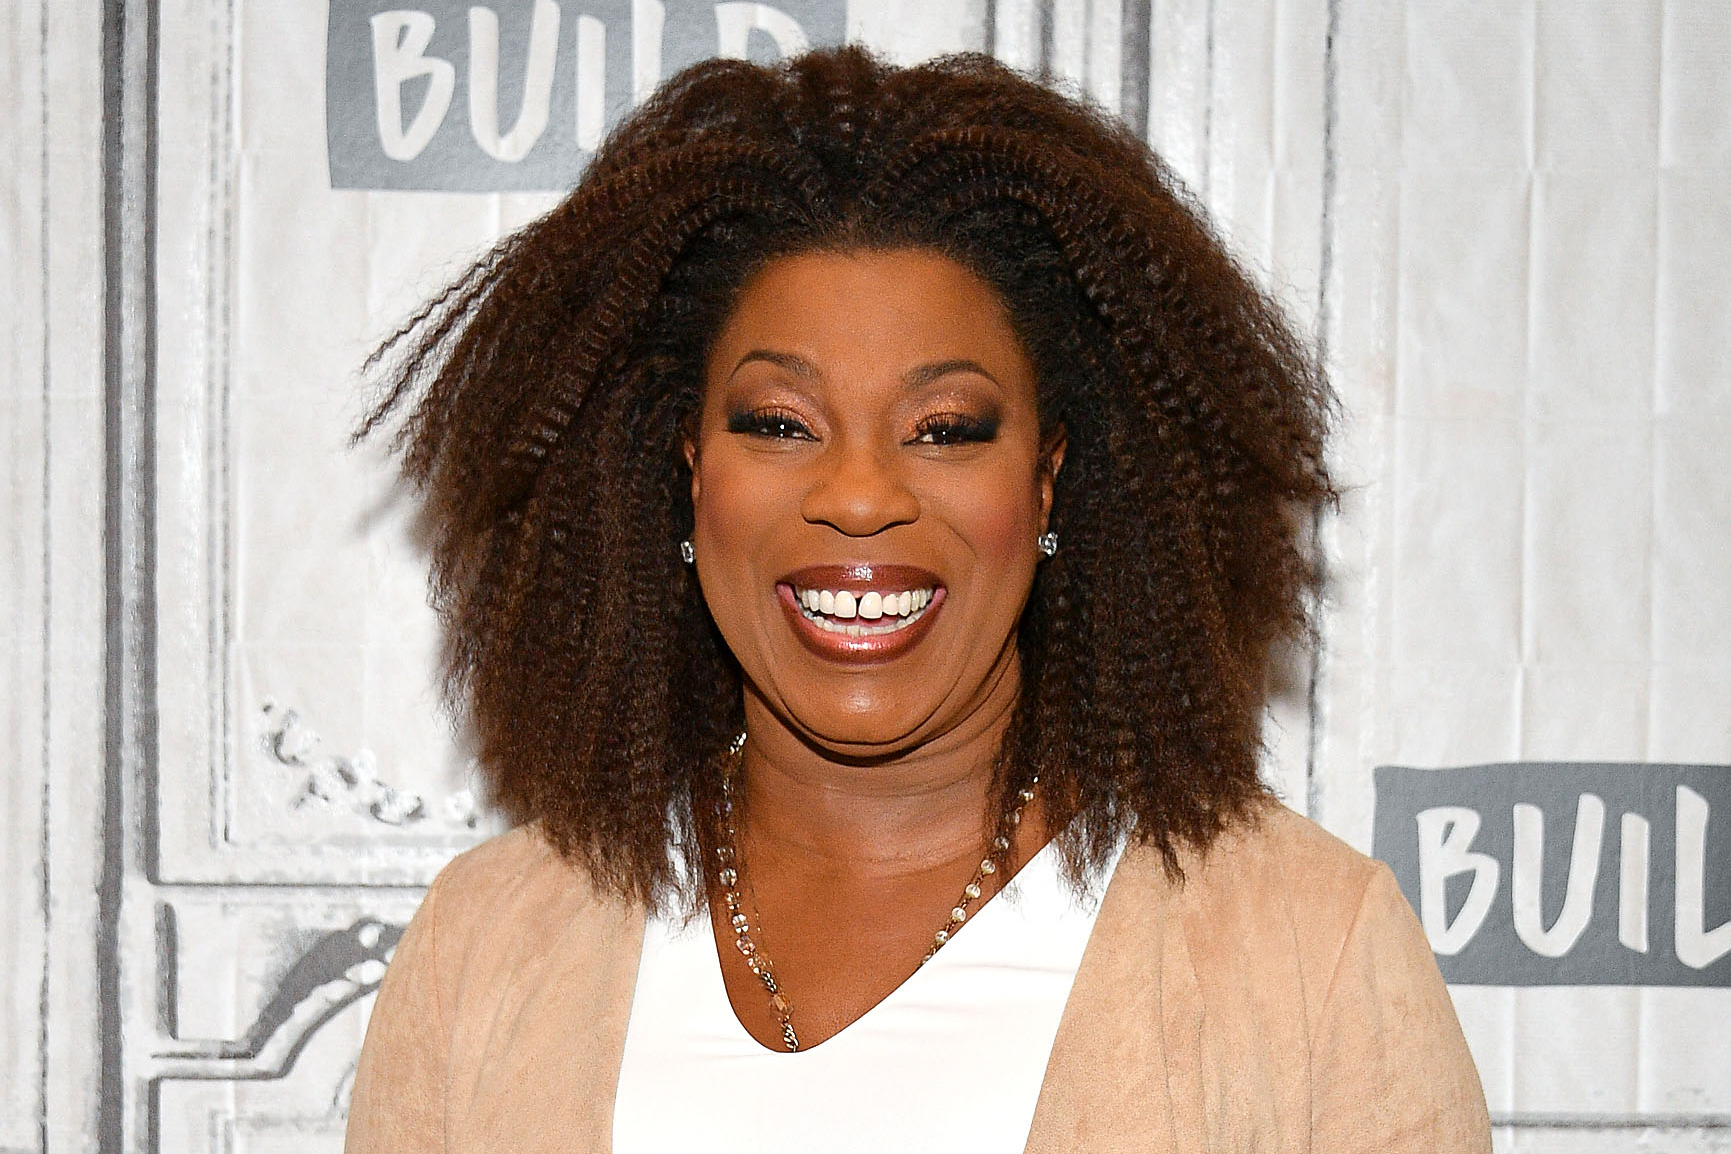 Village' star Lorraine Toussaint bonds with daughter over acupuncture